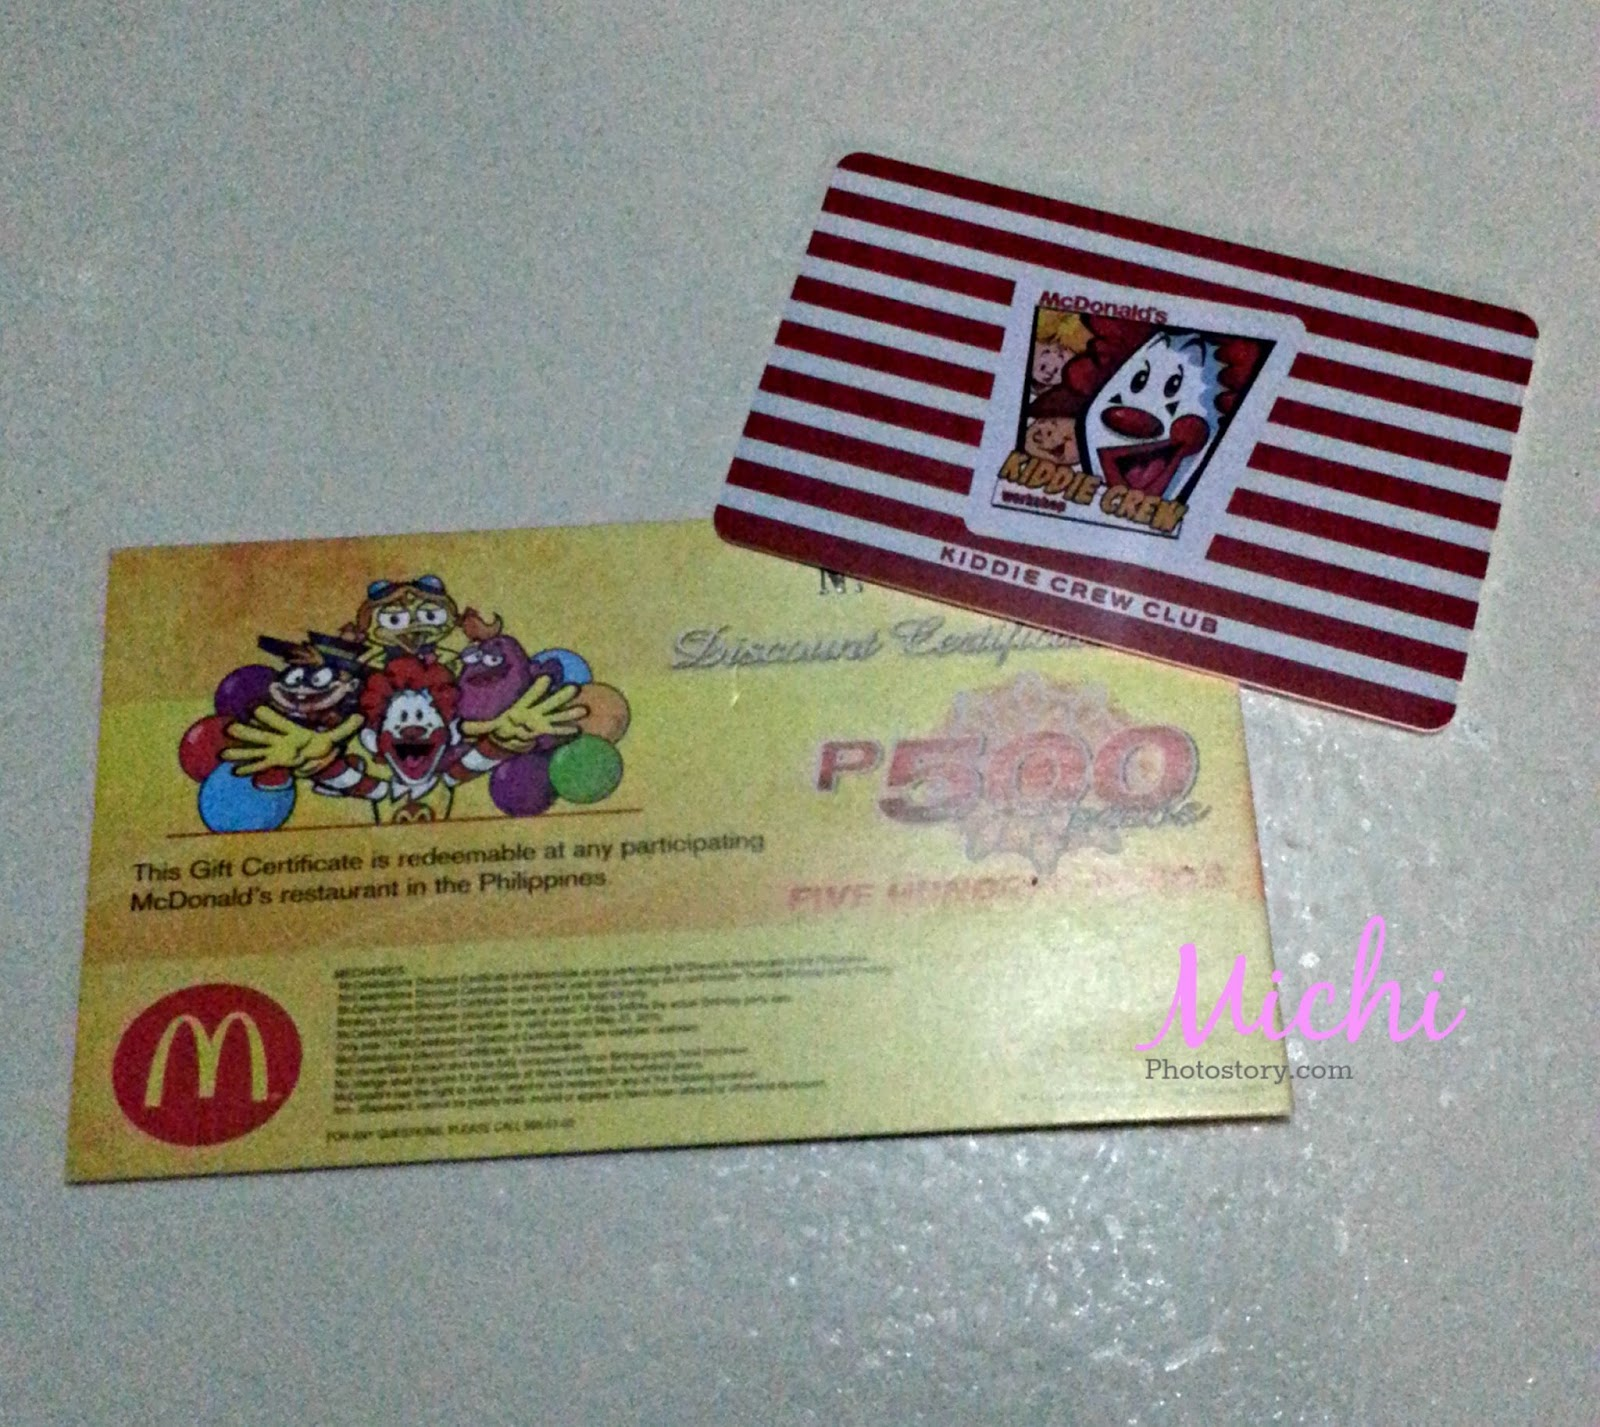 Michi photostory mcdonalds kiddie crew club card the first time i had this card was 6 years ago and i was able to use it in my sons 1st birthday party at that time i got 10 discount in 1betcityfo Image collections